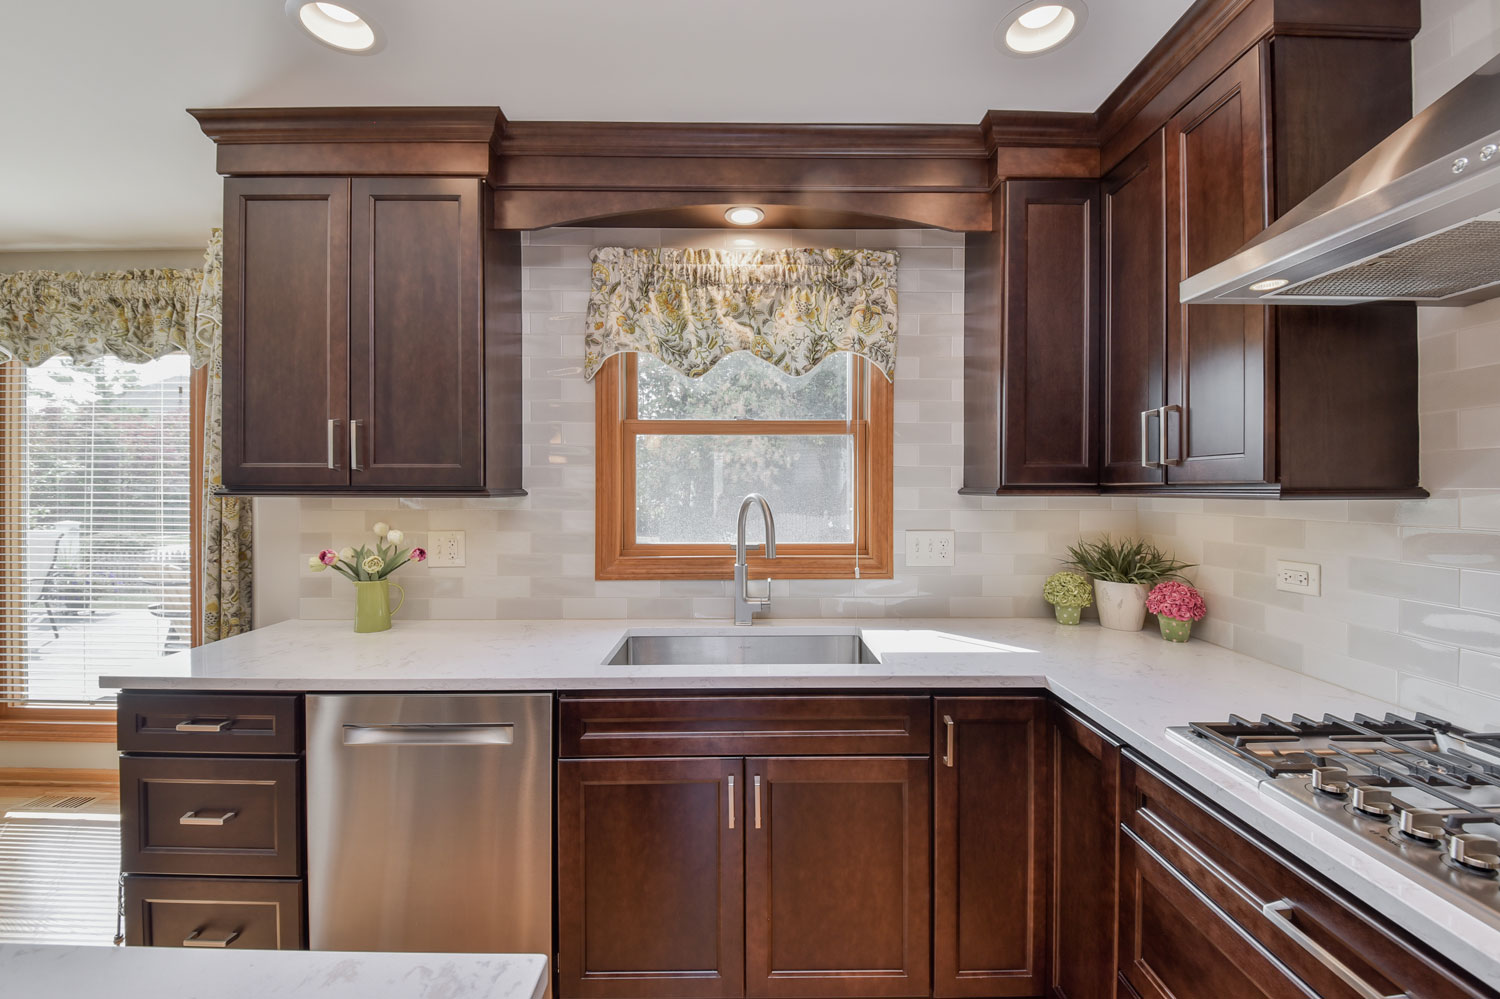 Gorgeous Kitchen Renovation In Potomac Maryland: Sue & Russell's Kitchen Remodel Pictures